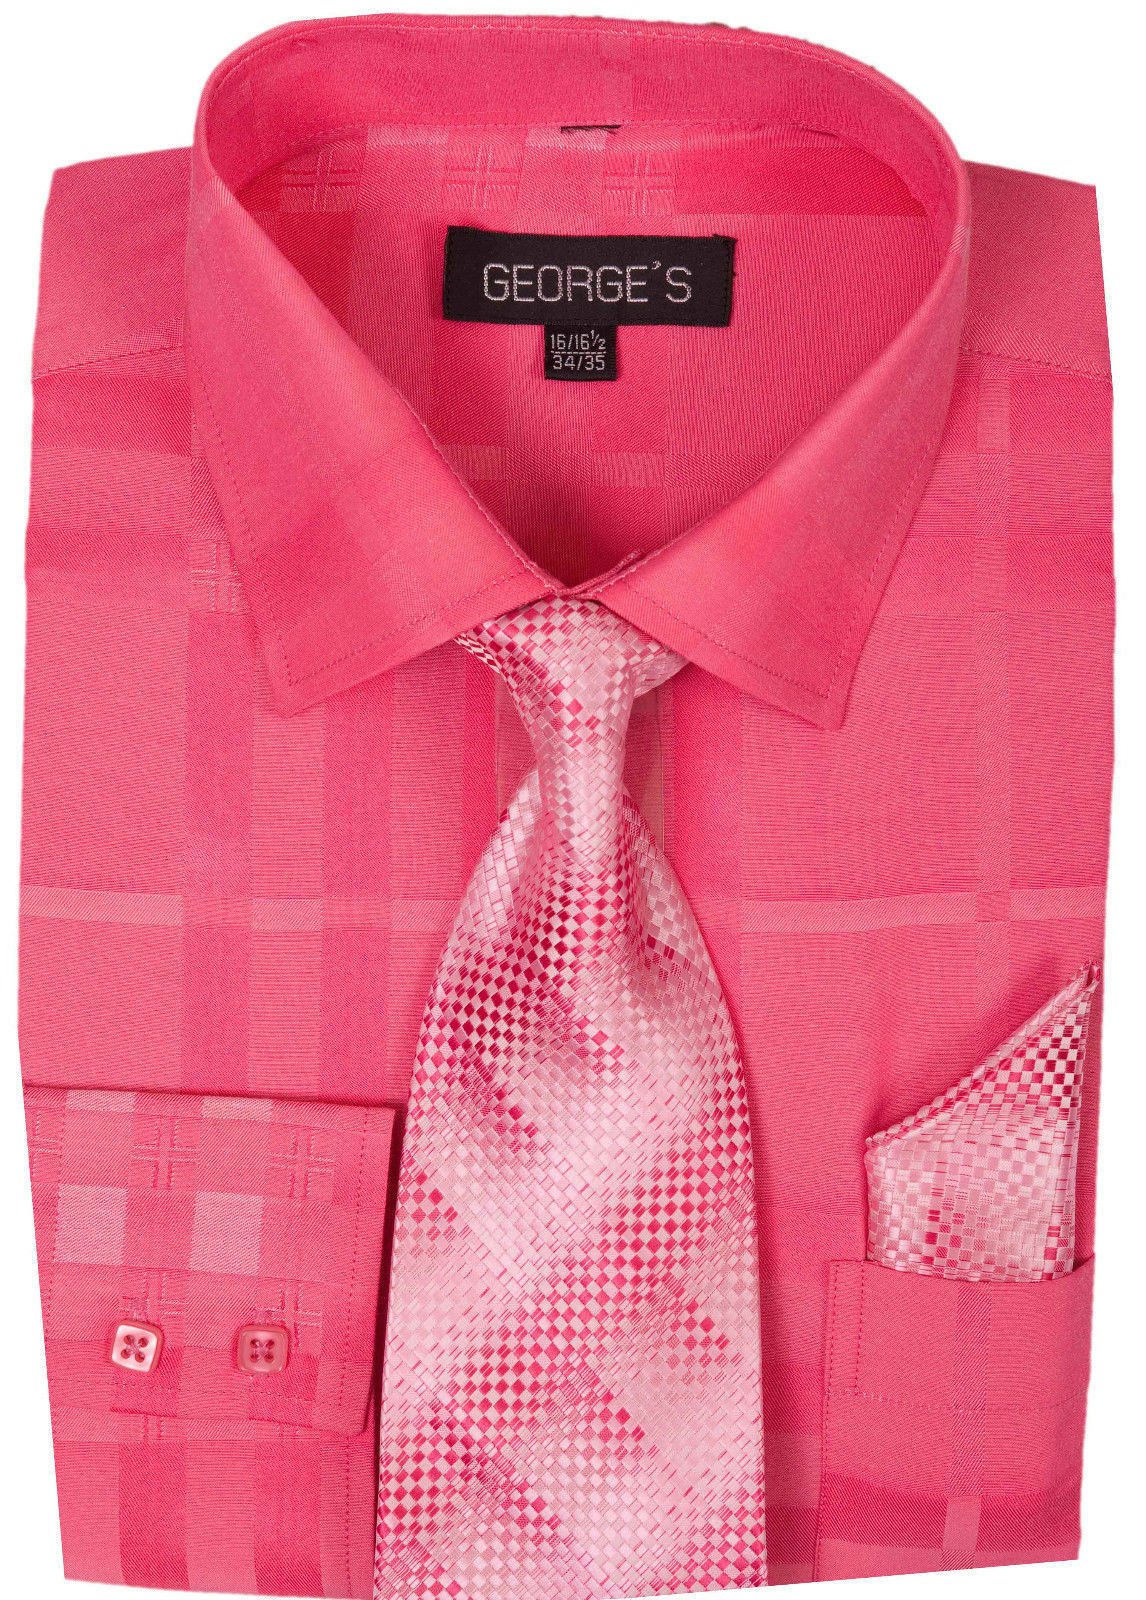 Milano Moda Men Shirt AH623-Fuchsia - Church Suits For Less